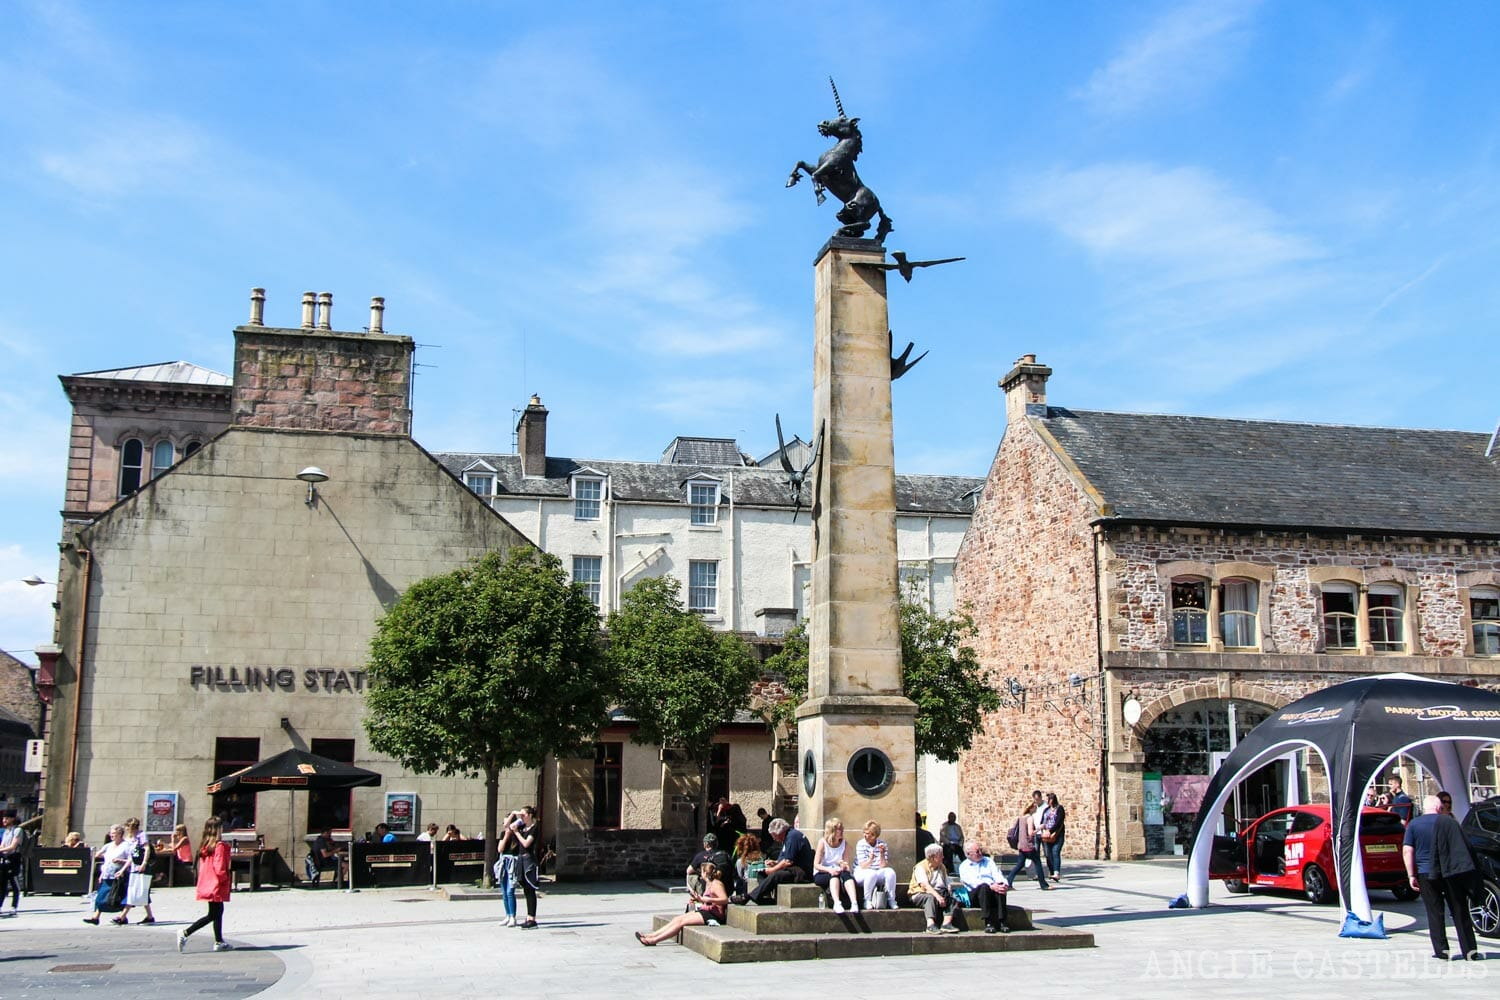 El unicornio, el animal nacional de Escocia - Mercat Cross Inverness